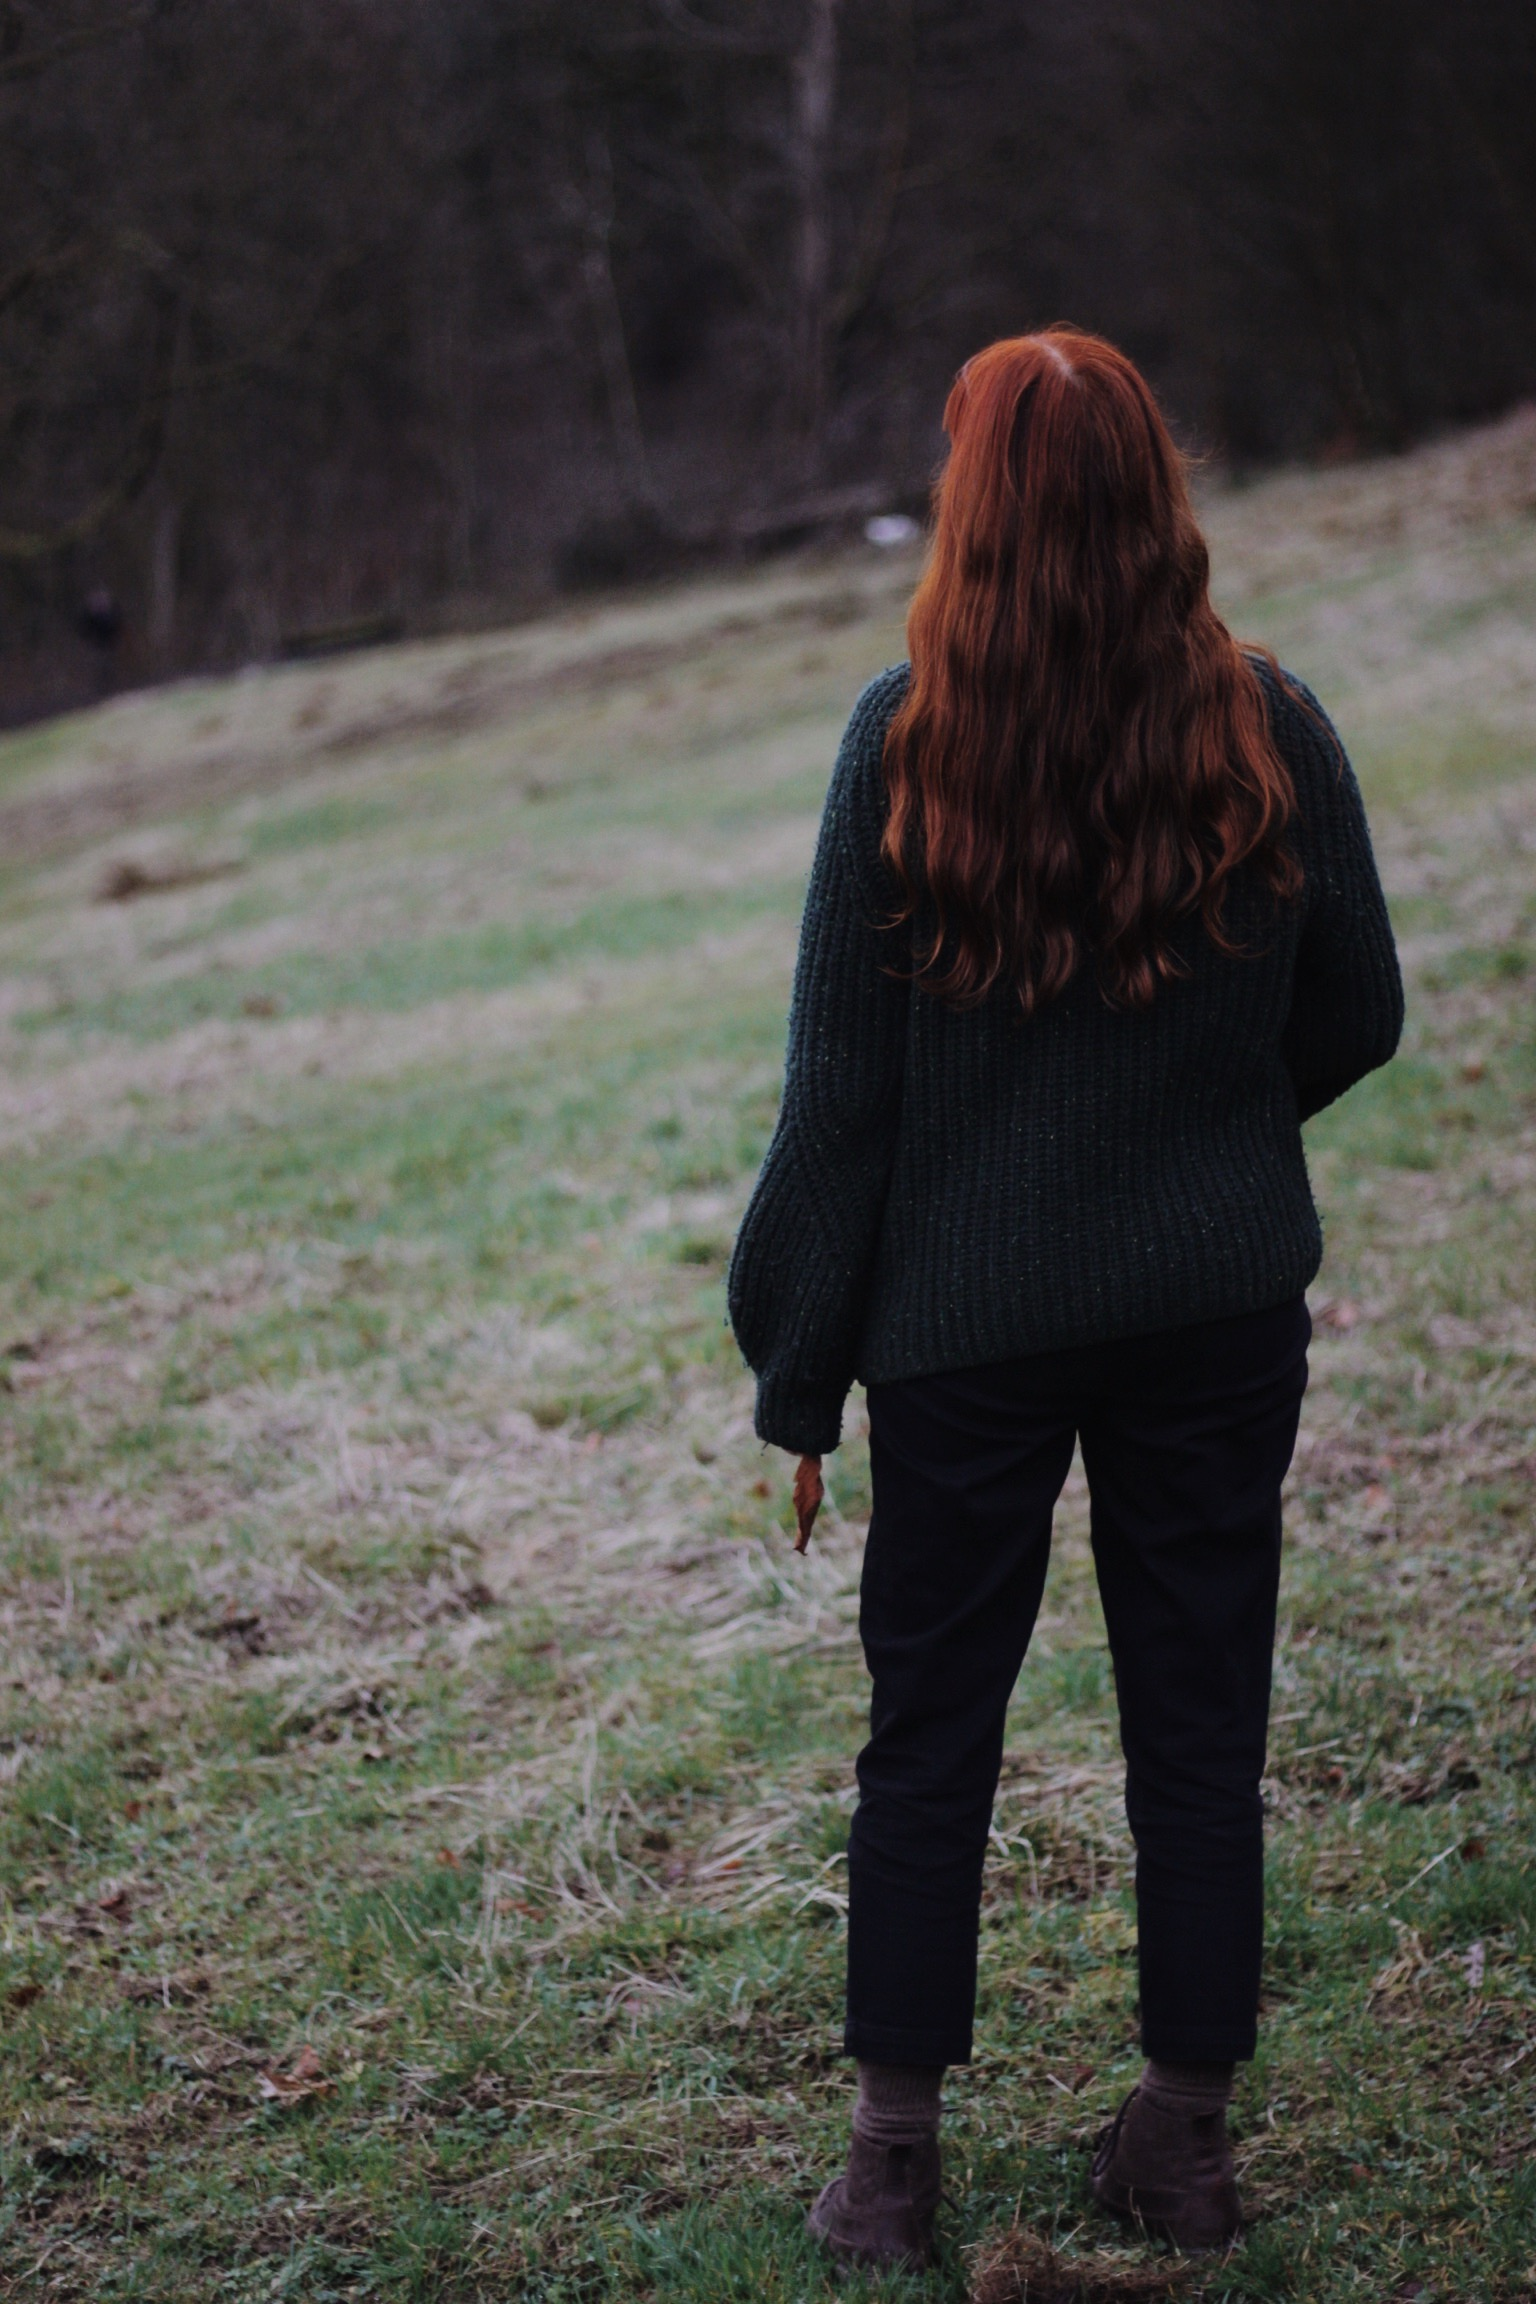 Girl stood in field